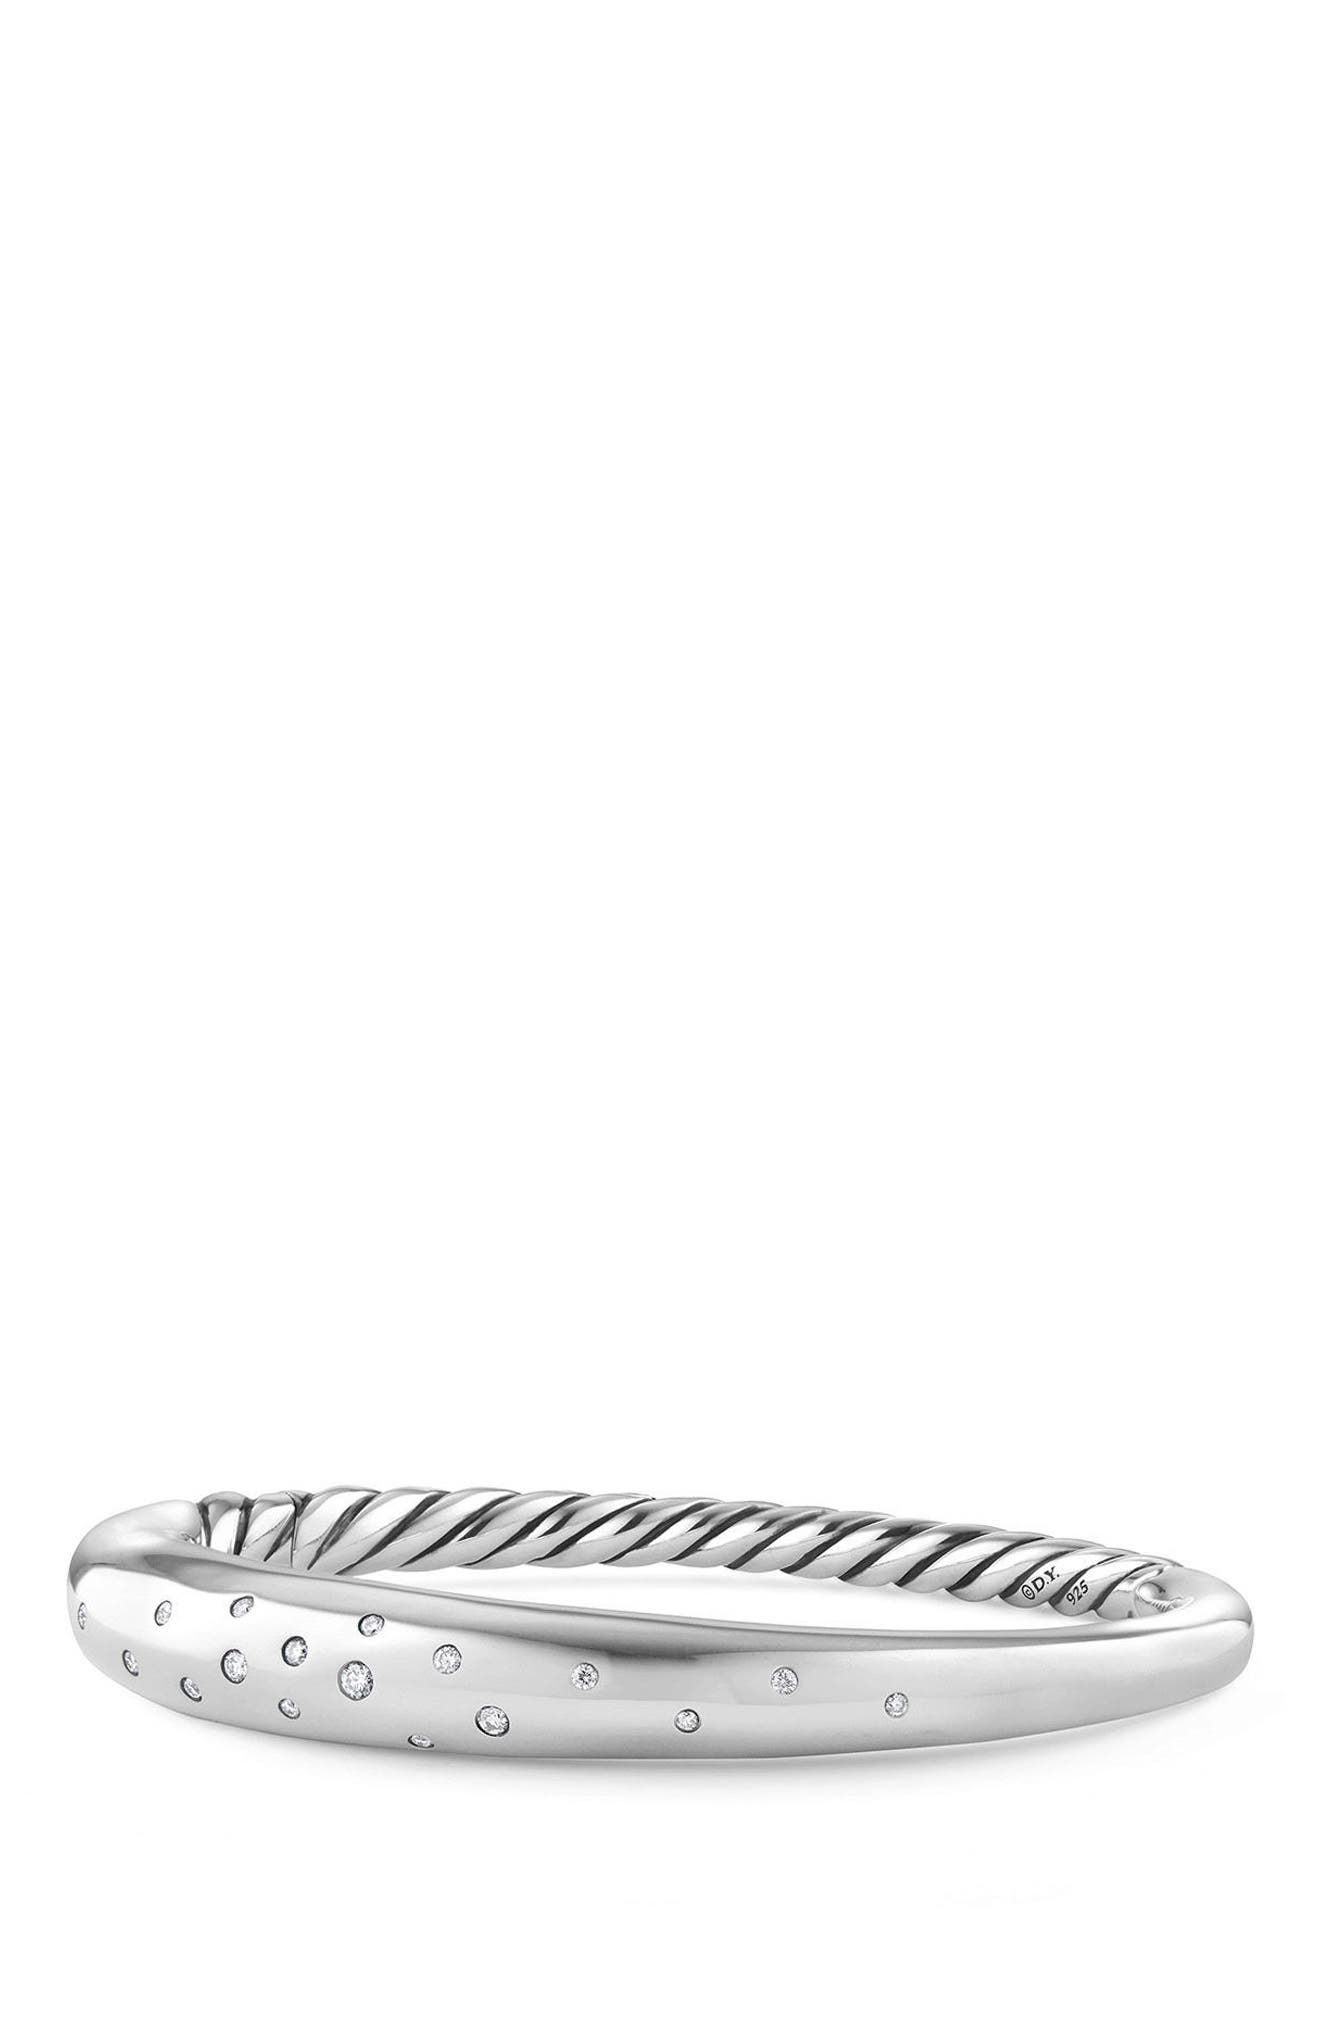 David Yurman Pure Form Smooth Bracelet with Diamonds, 9.5mm